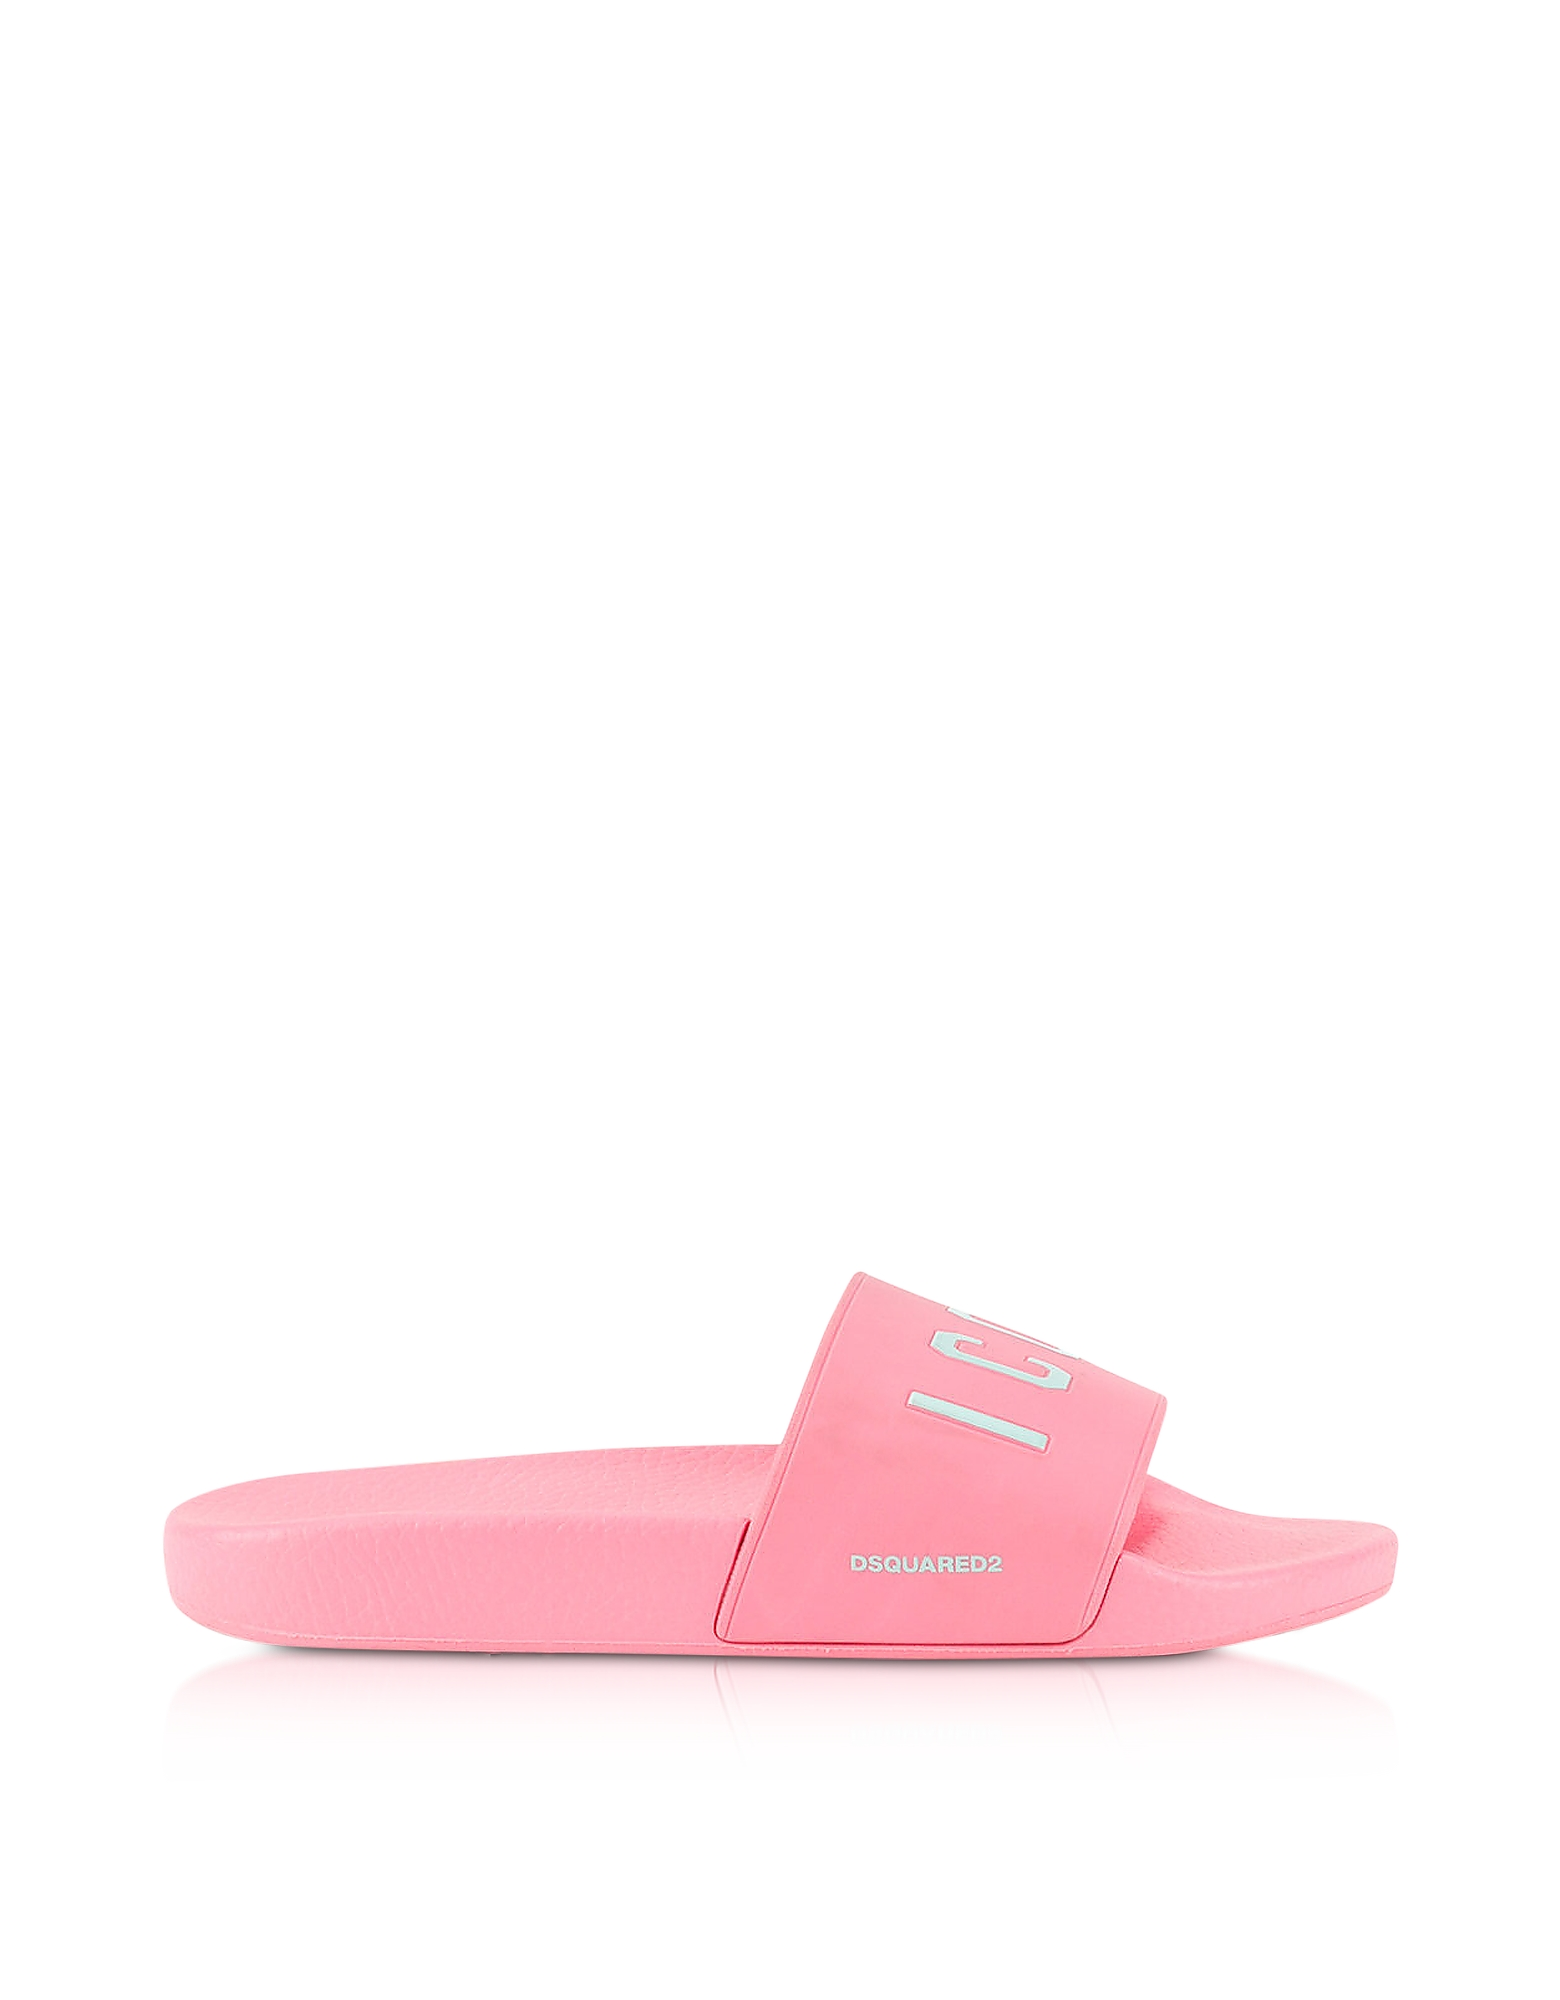 DSquared2 Shoes, Icon Pink Rubber Slide Sandals